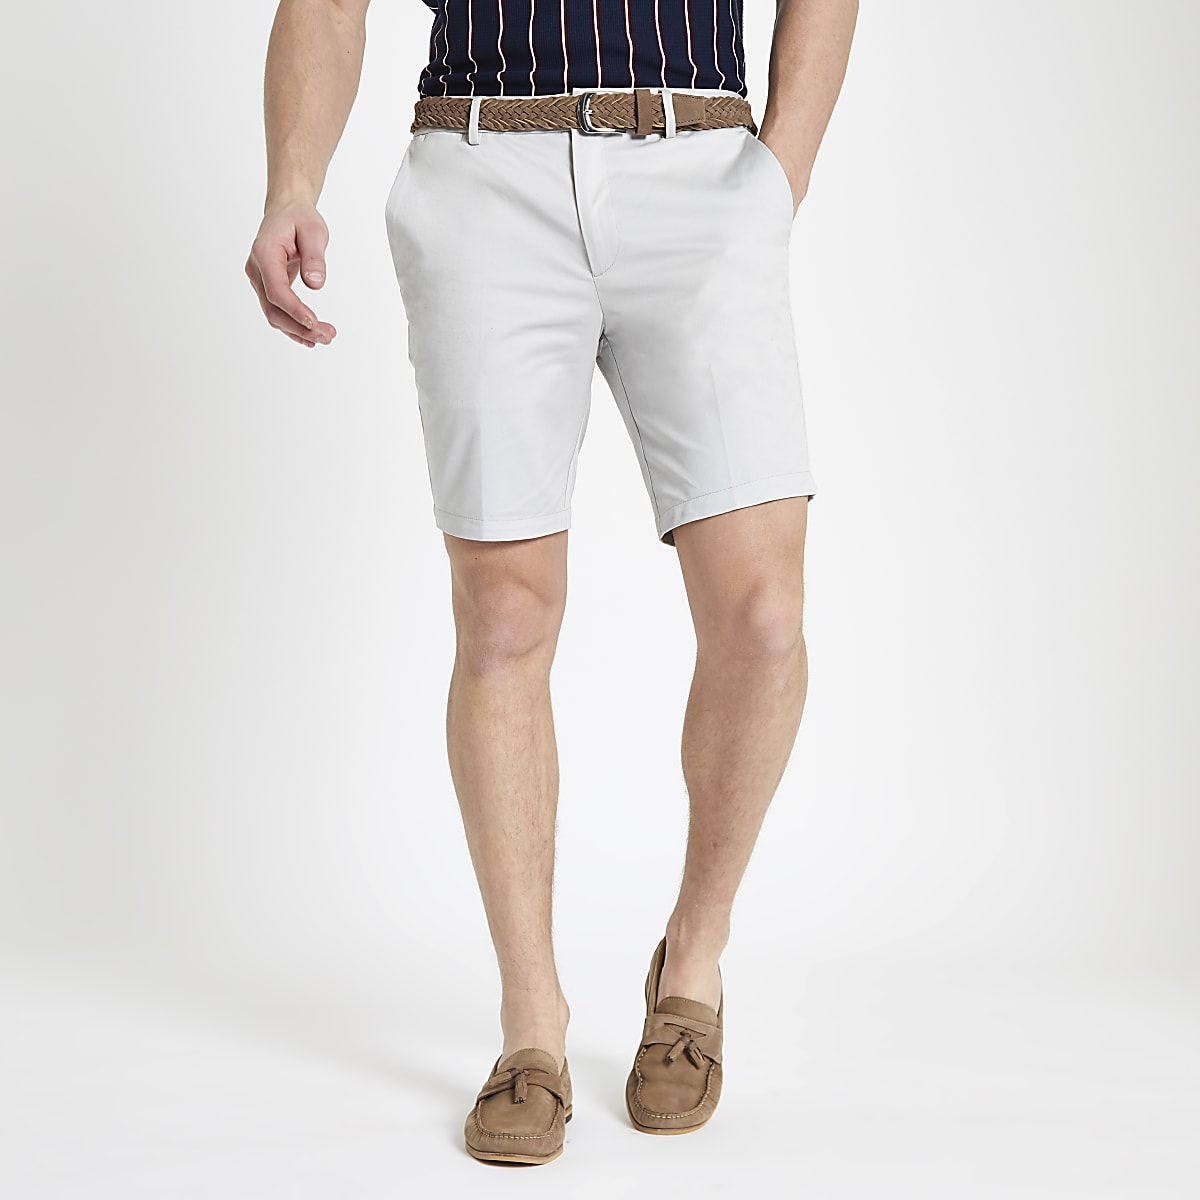 8670973278 Stone belted slim fit chino shorts - Smart Shorts - Shorts - men